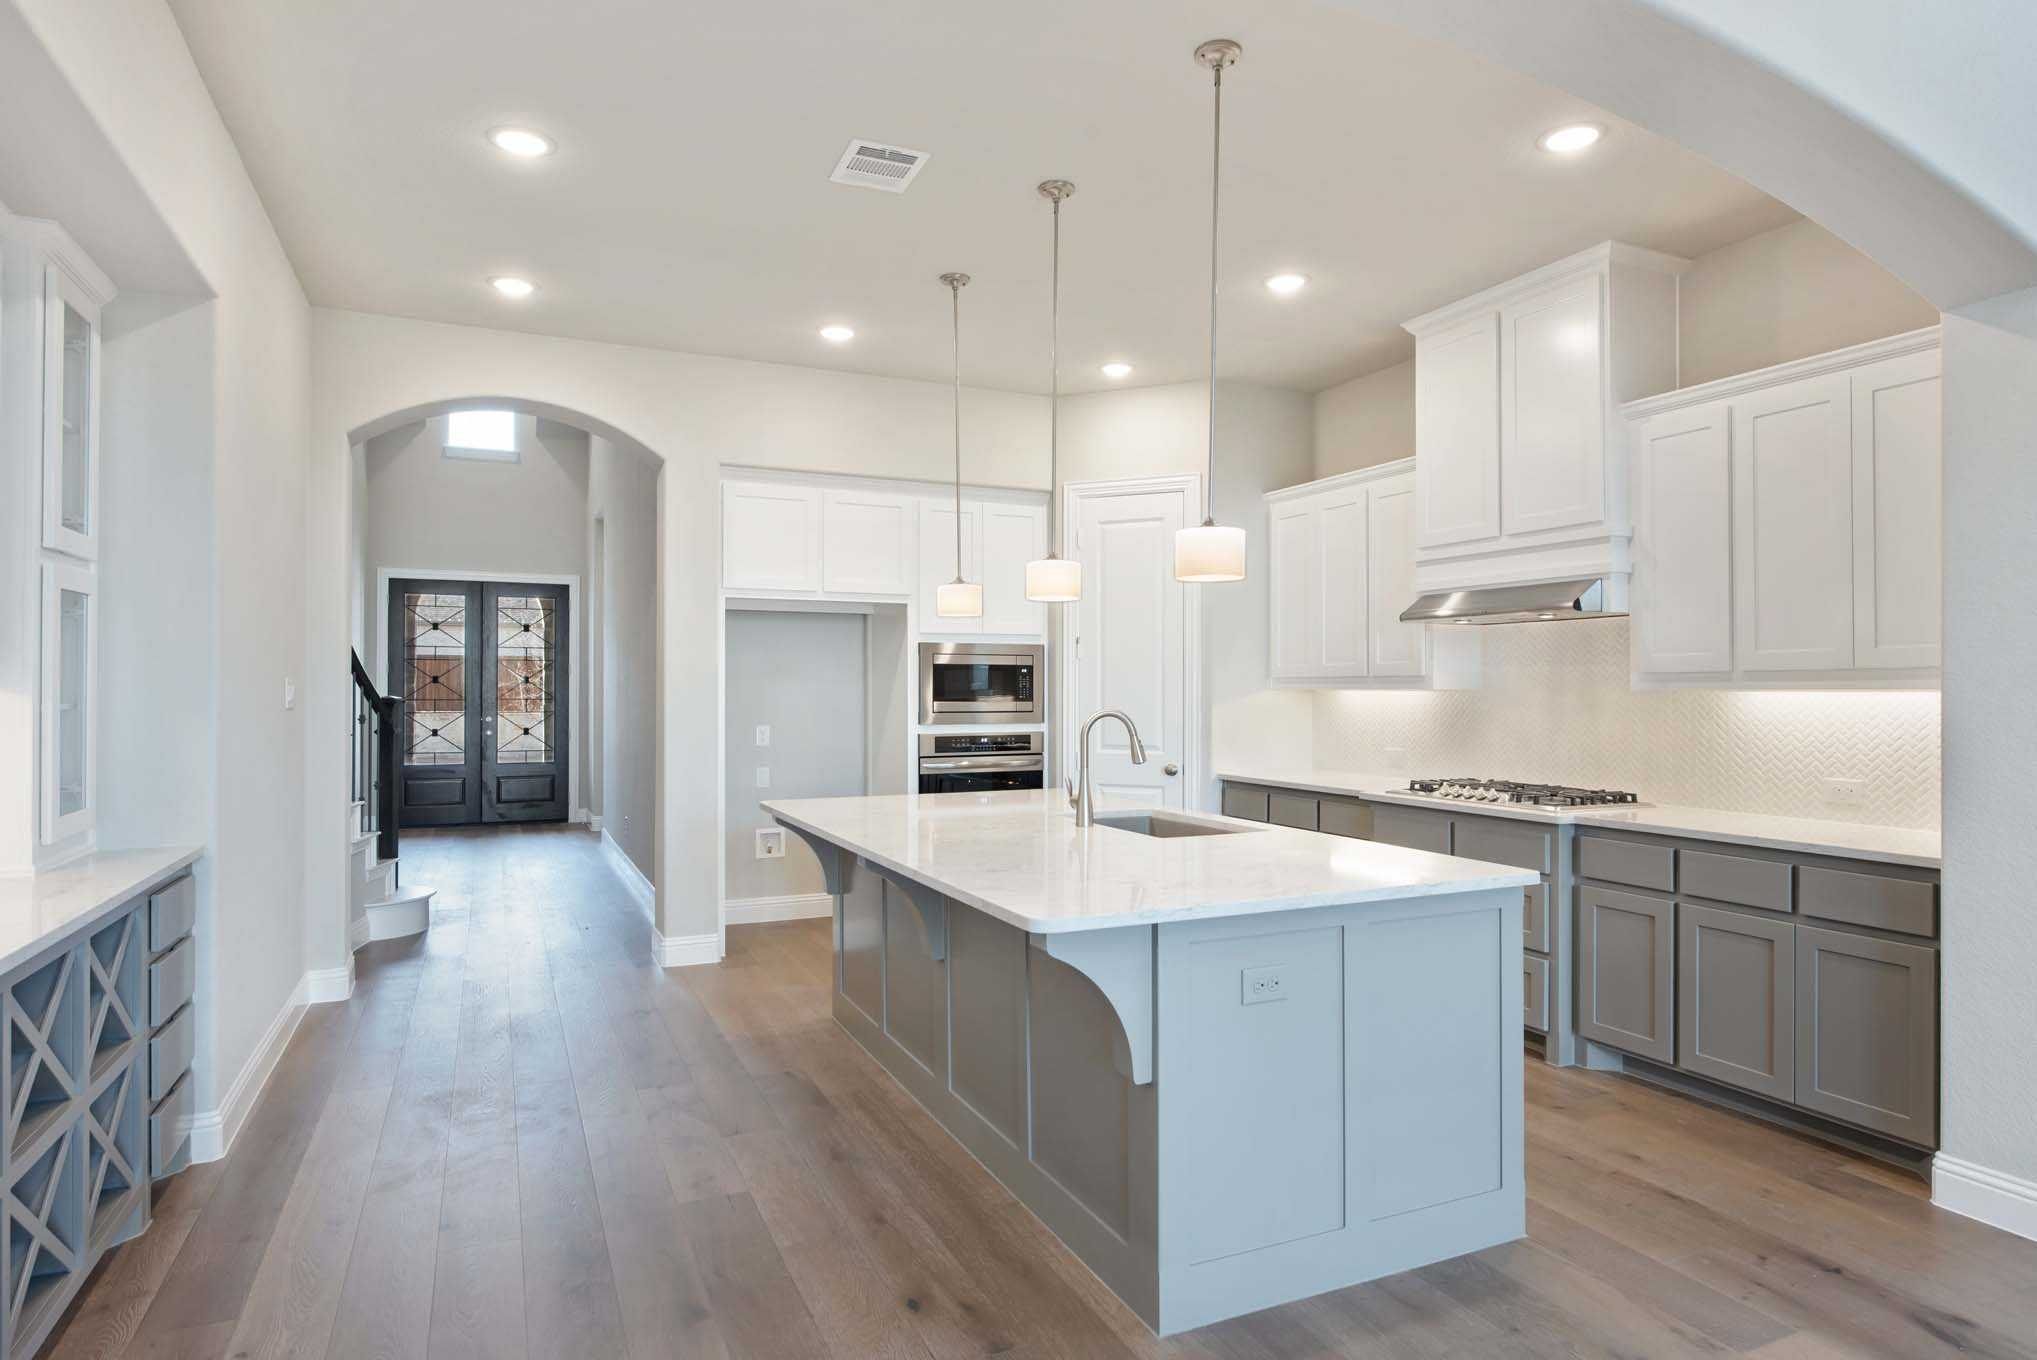 Kitchen featured in the Plan 224 By Highland Homes in Austin, TX